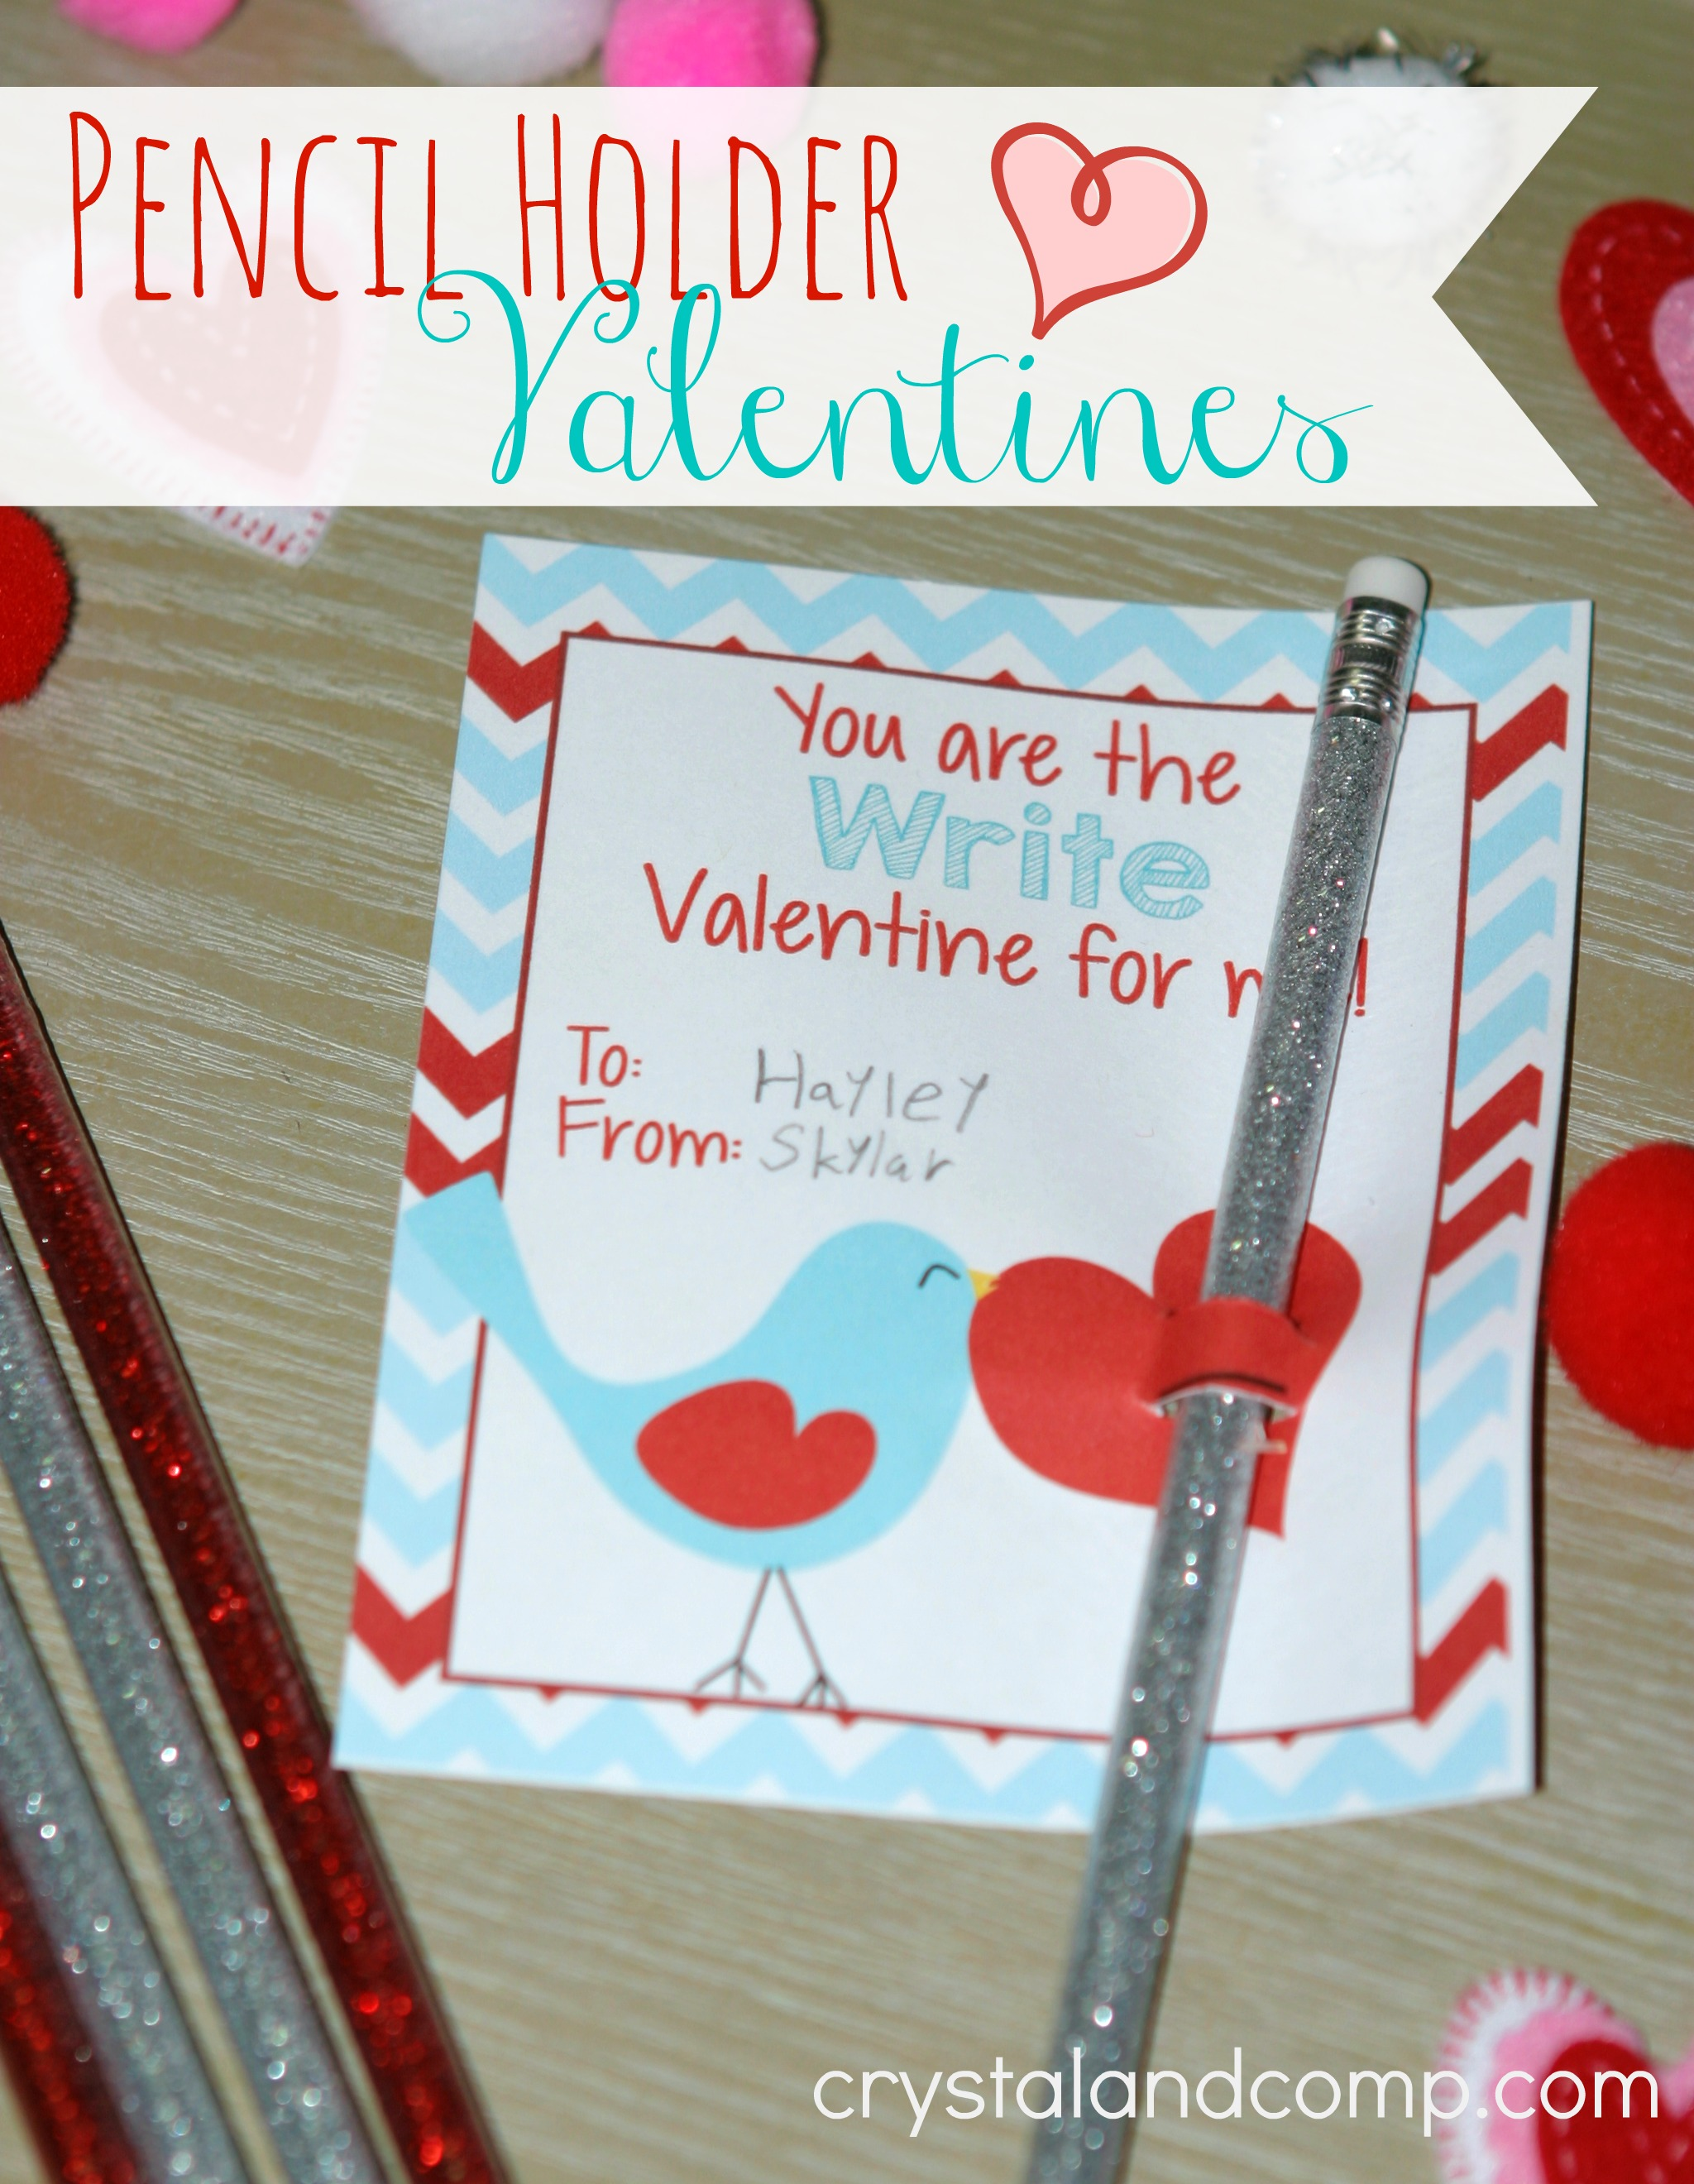 graphic about Pencil Valentine Printable identify Valentine Pencil Holder